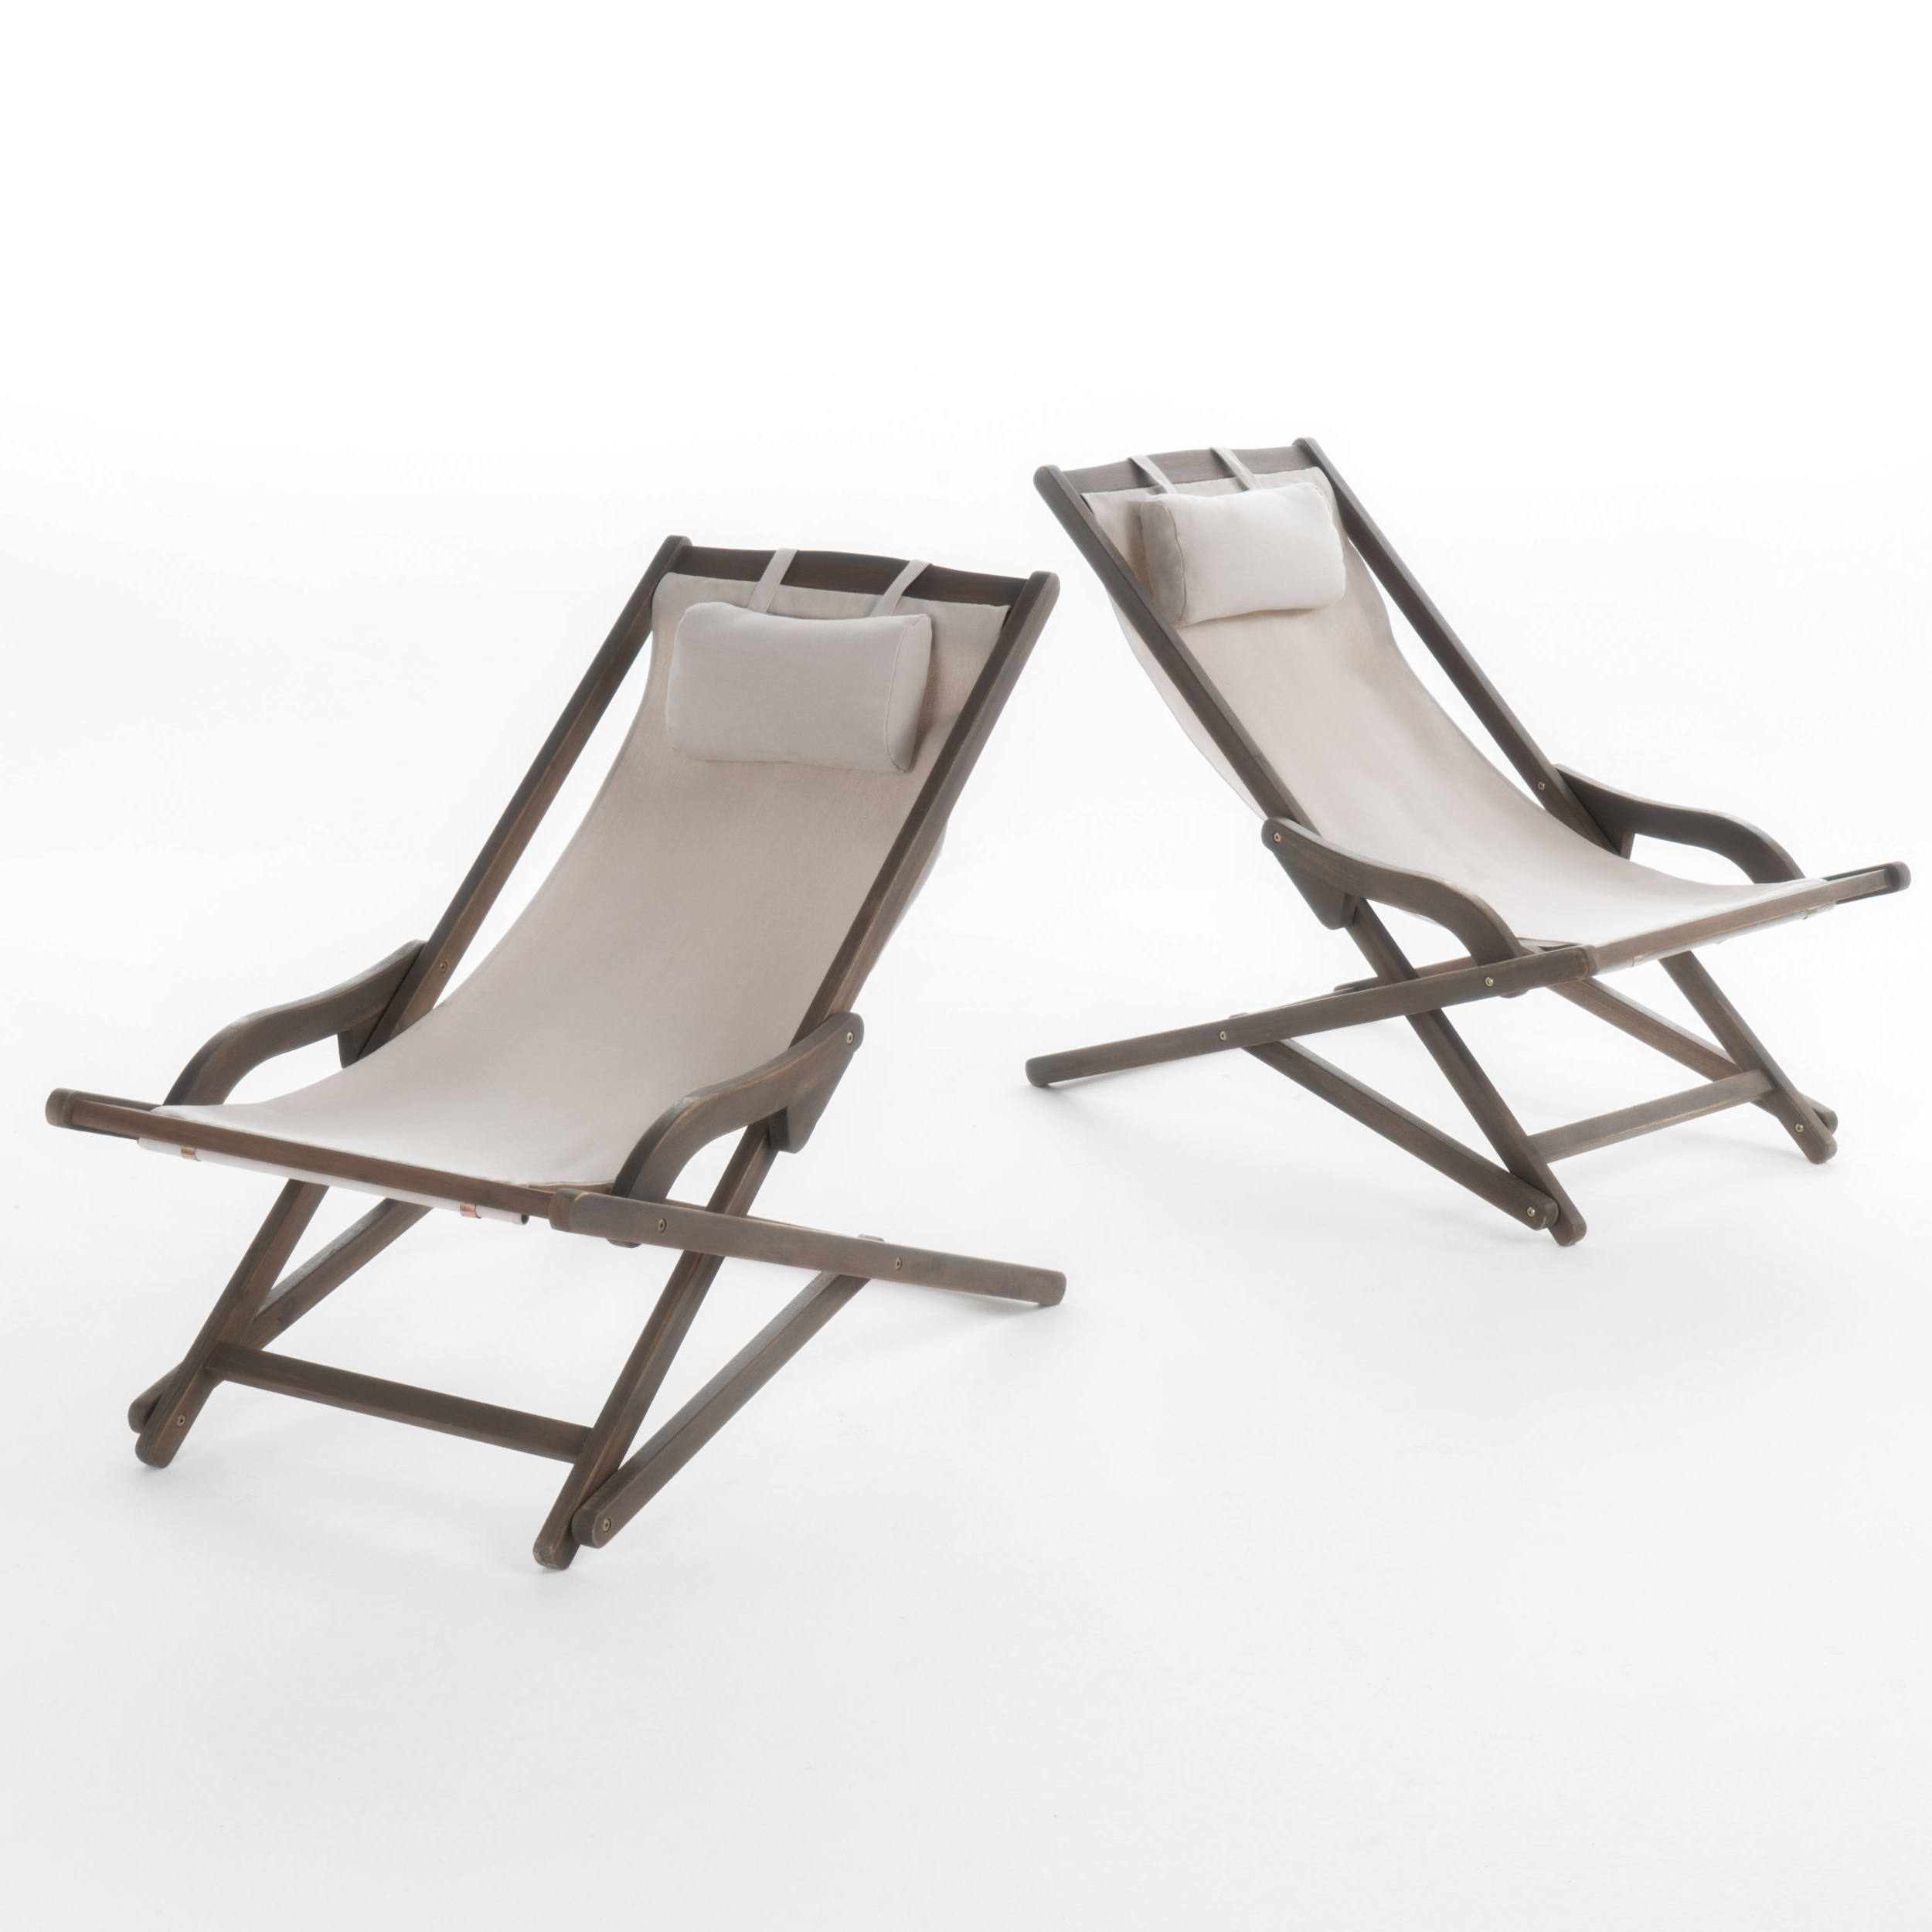 Northland Outdoor Wood And Canvas Sling Chair, Set Of 2, Beige Throughout Famous Outdoor Wood Sling Chairs (View 10 of 25)